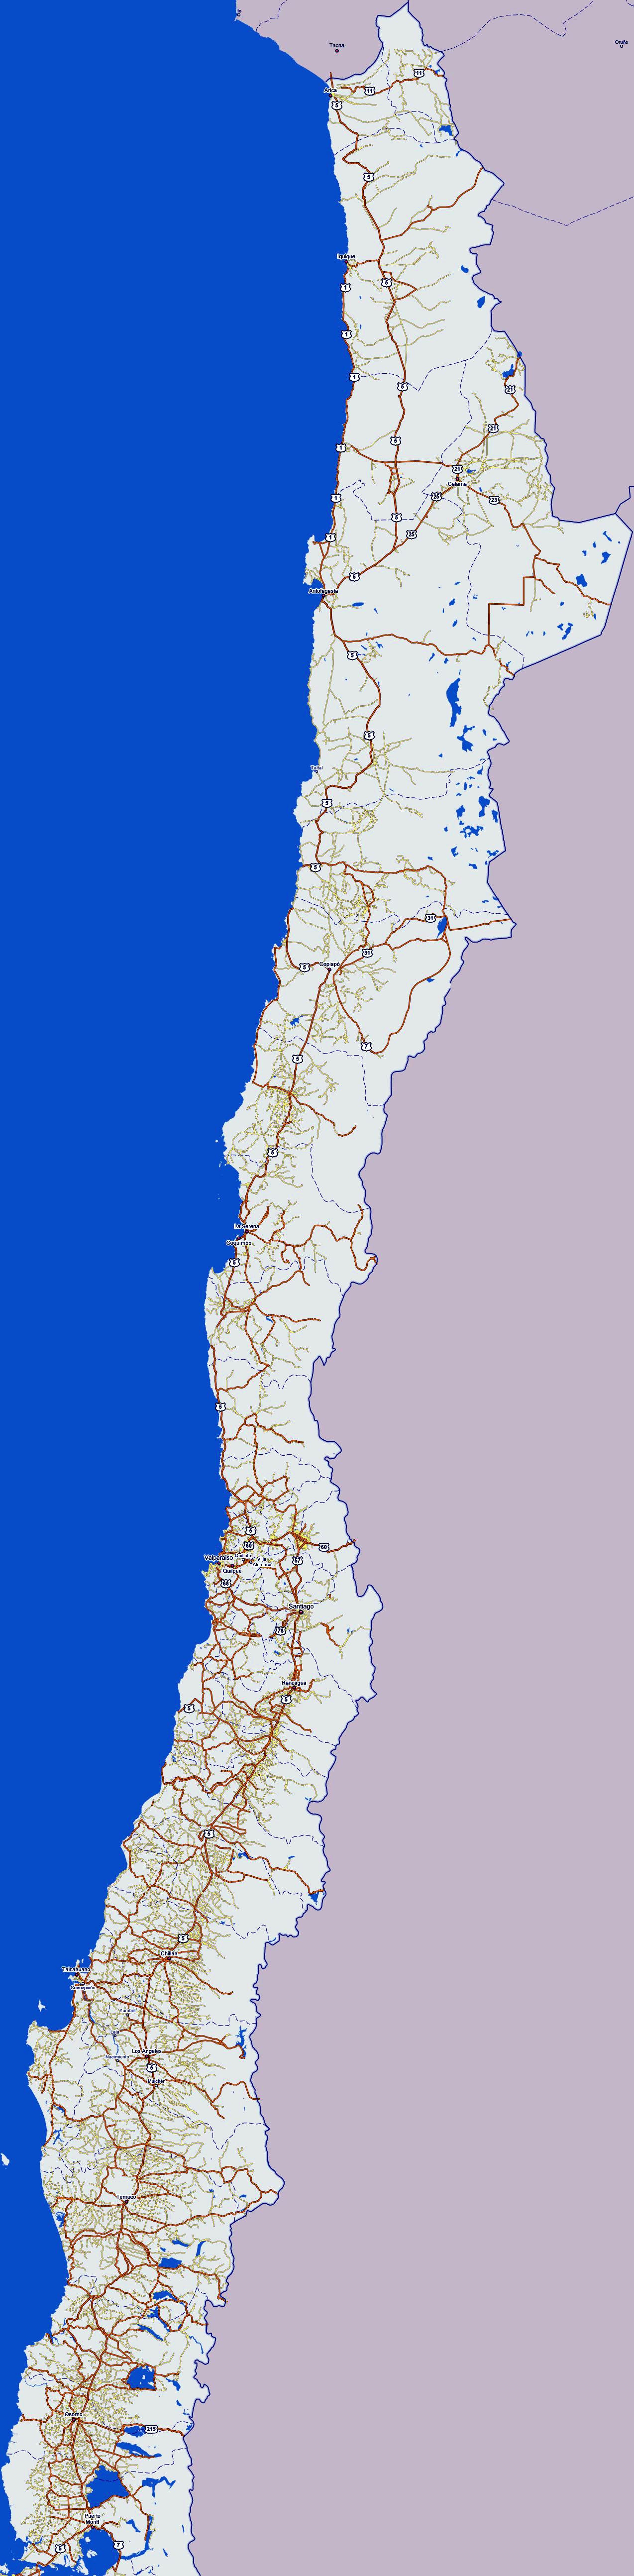 Chile Maps | Printable Maps Of Chile For Download - Printable Map Of Chile